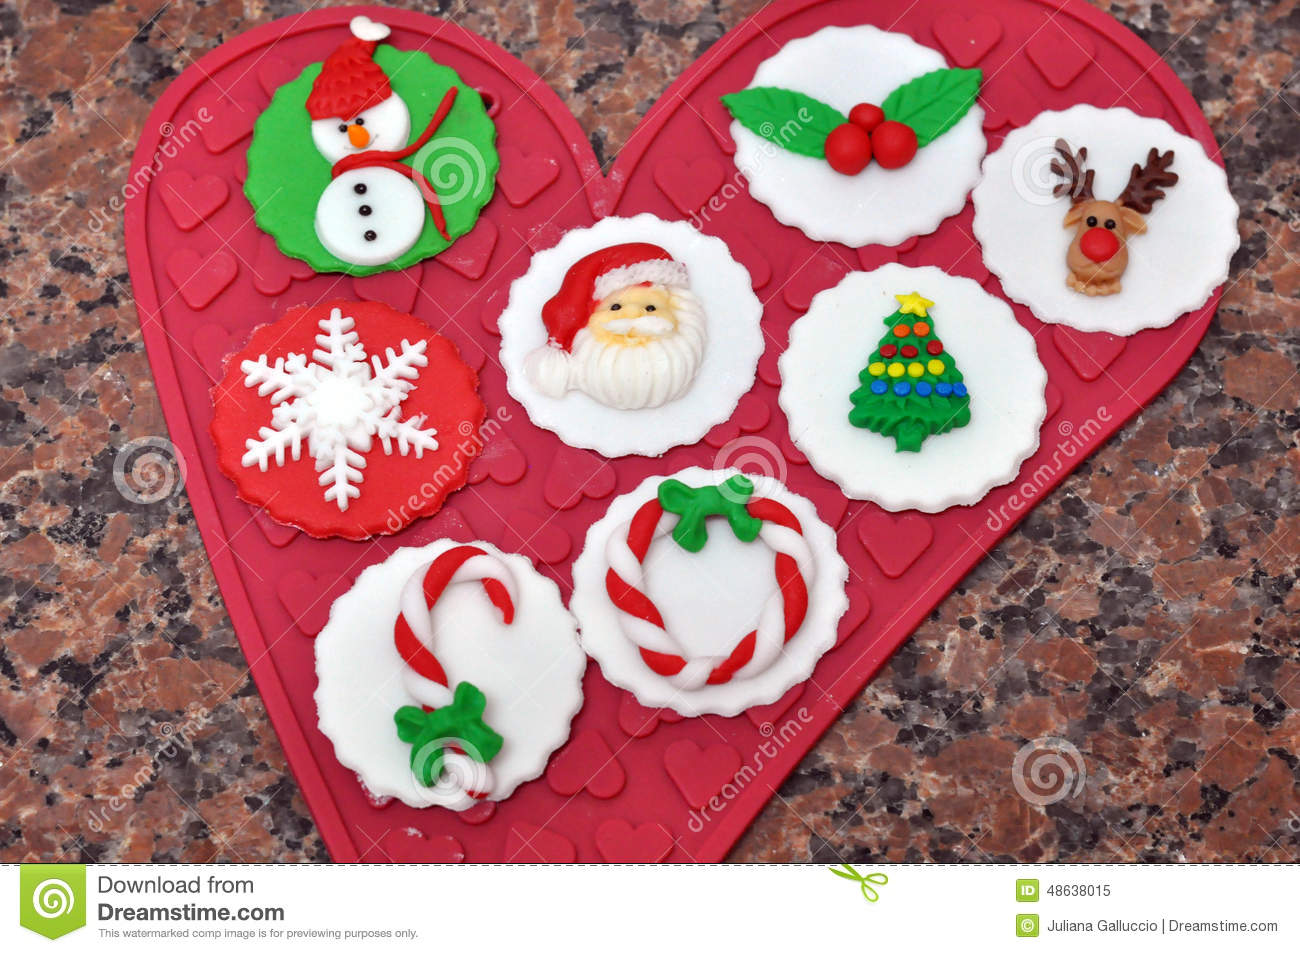 download christmas cupcake decorations stock image image of decoration white 48638015